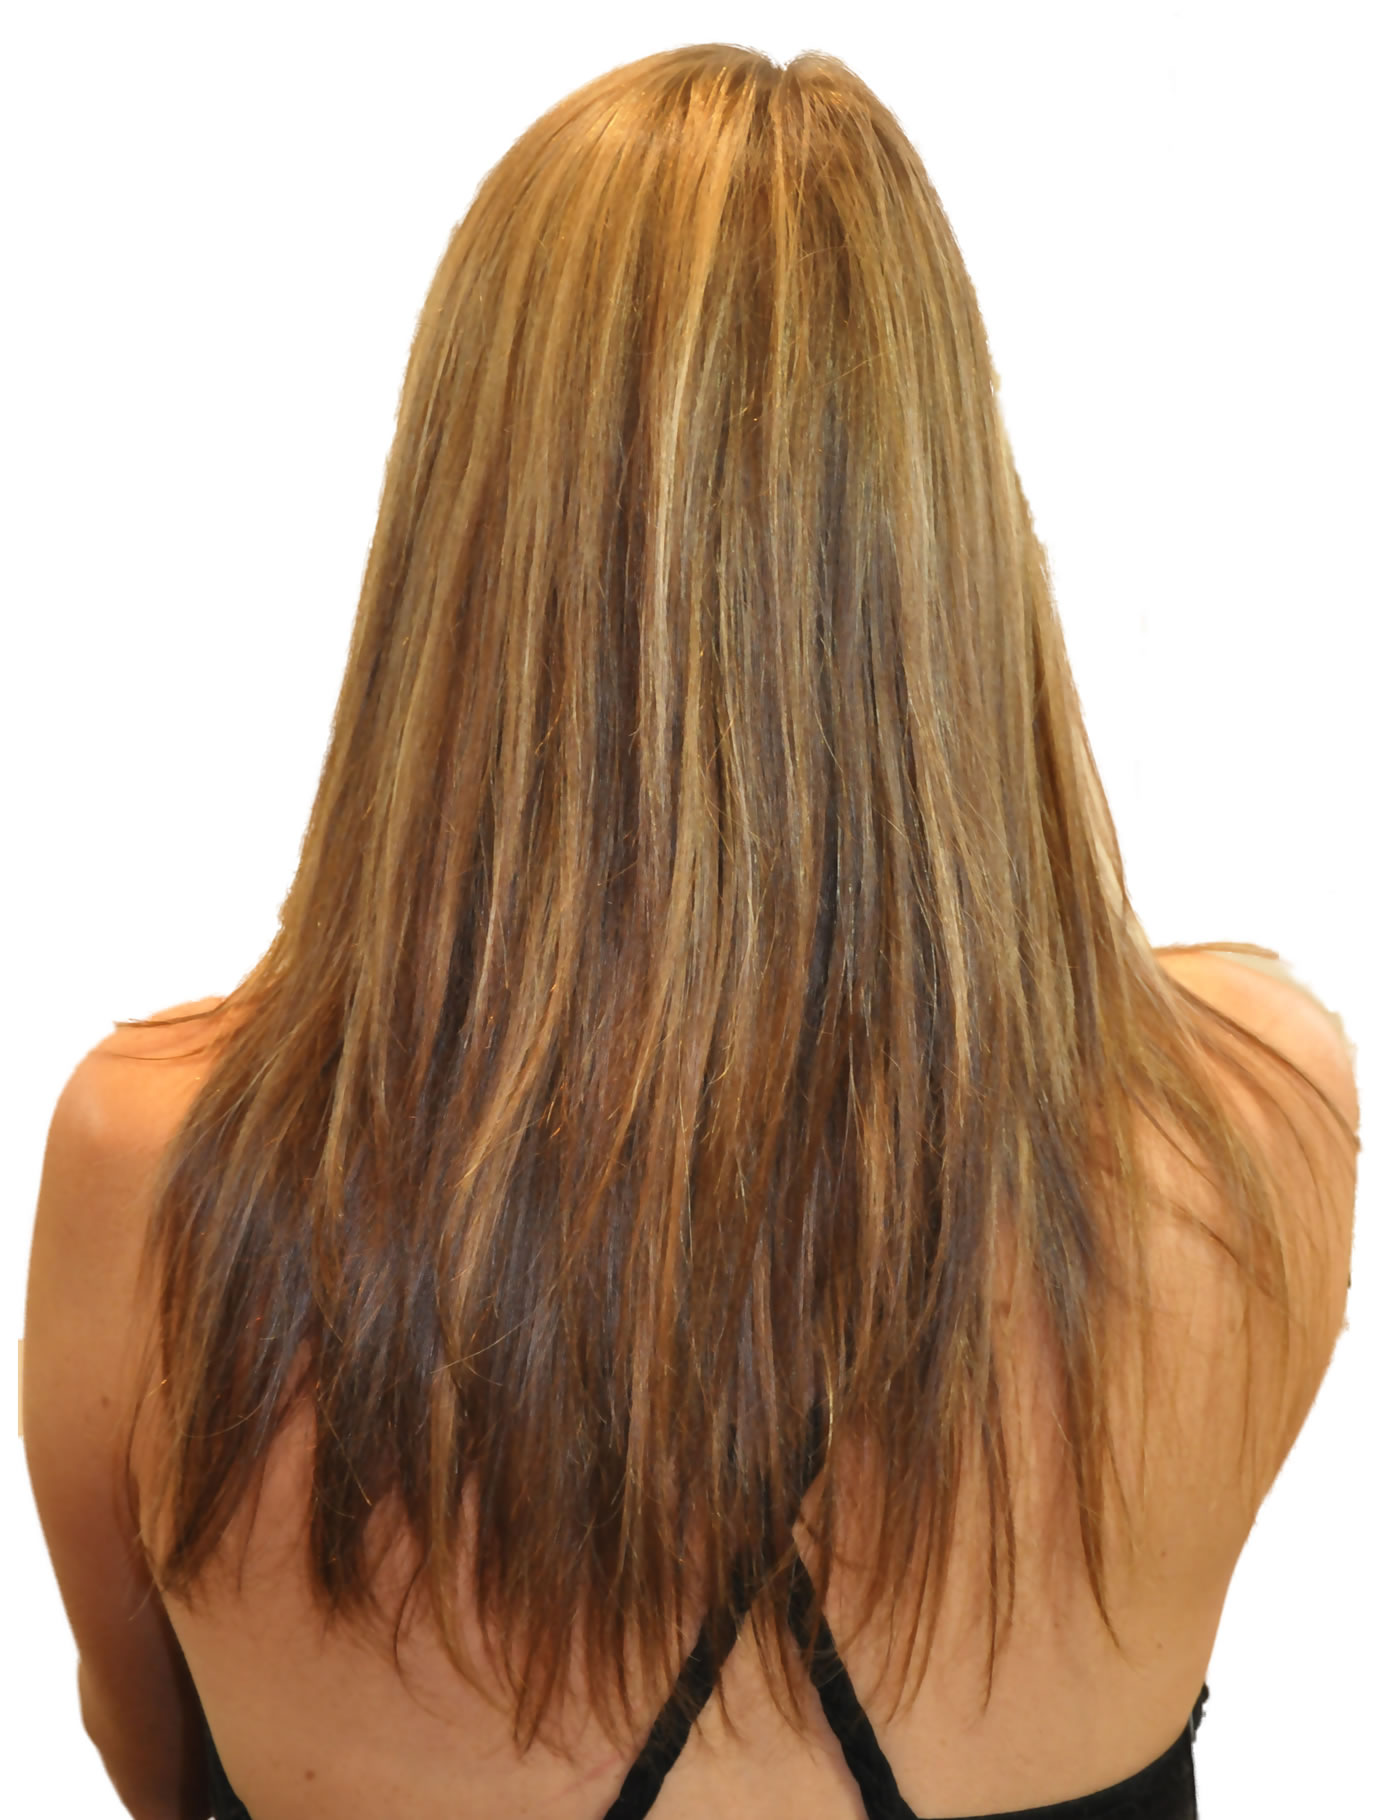 'Hair Extensions Tried and Tested' - Before